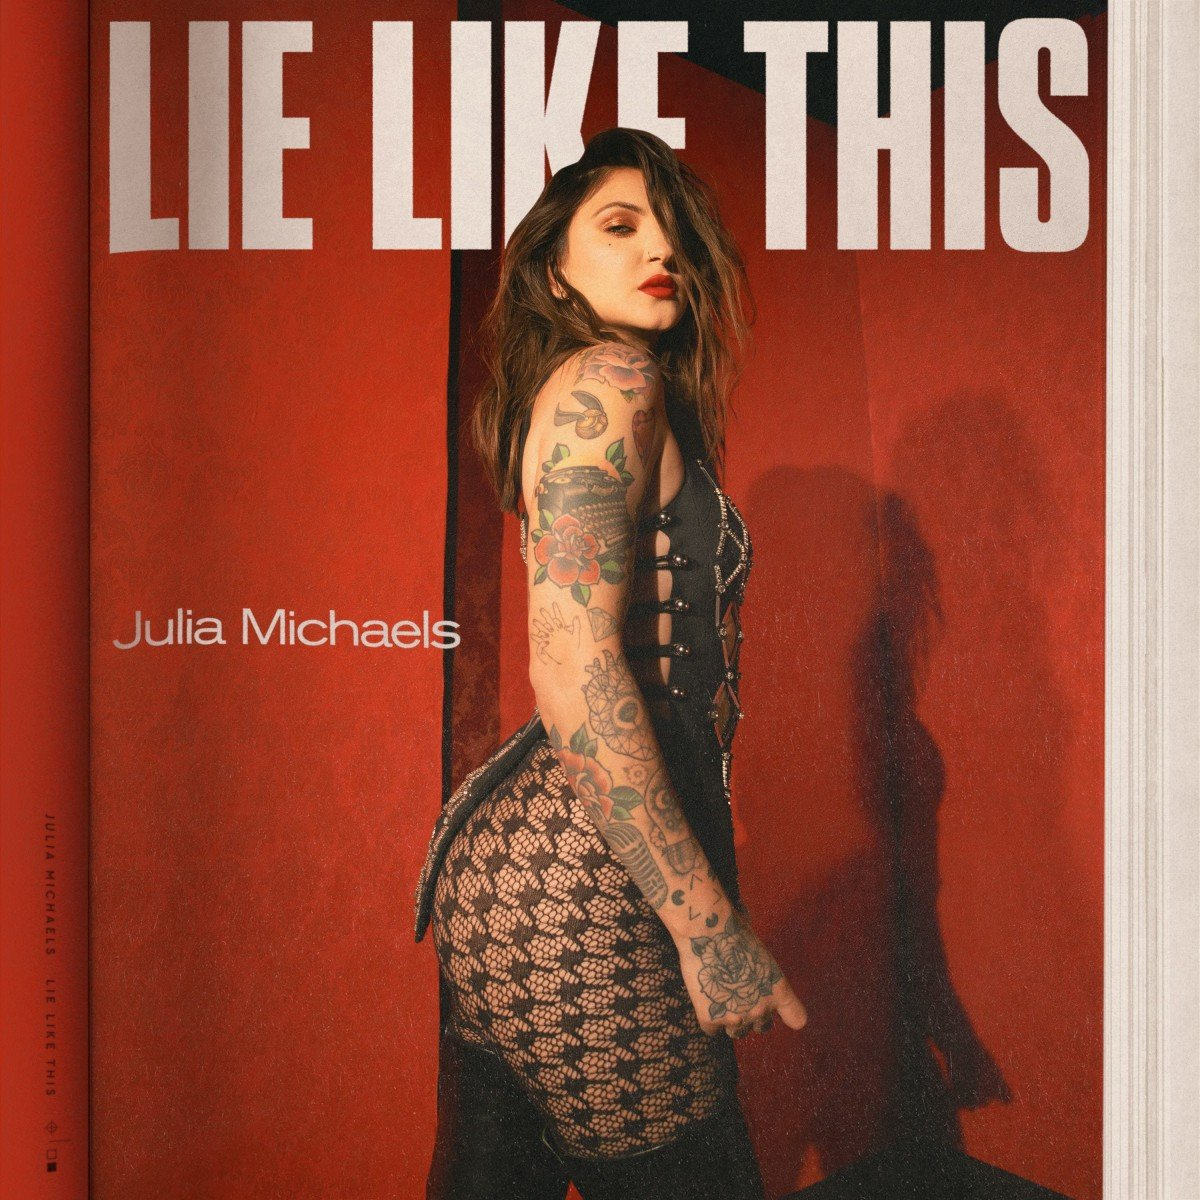 """Julia Michaels """"Lie Like This"""" cover artwork poster 2020"""